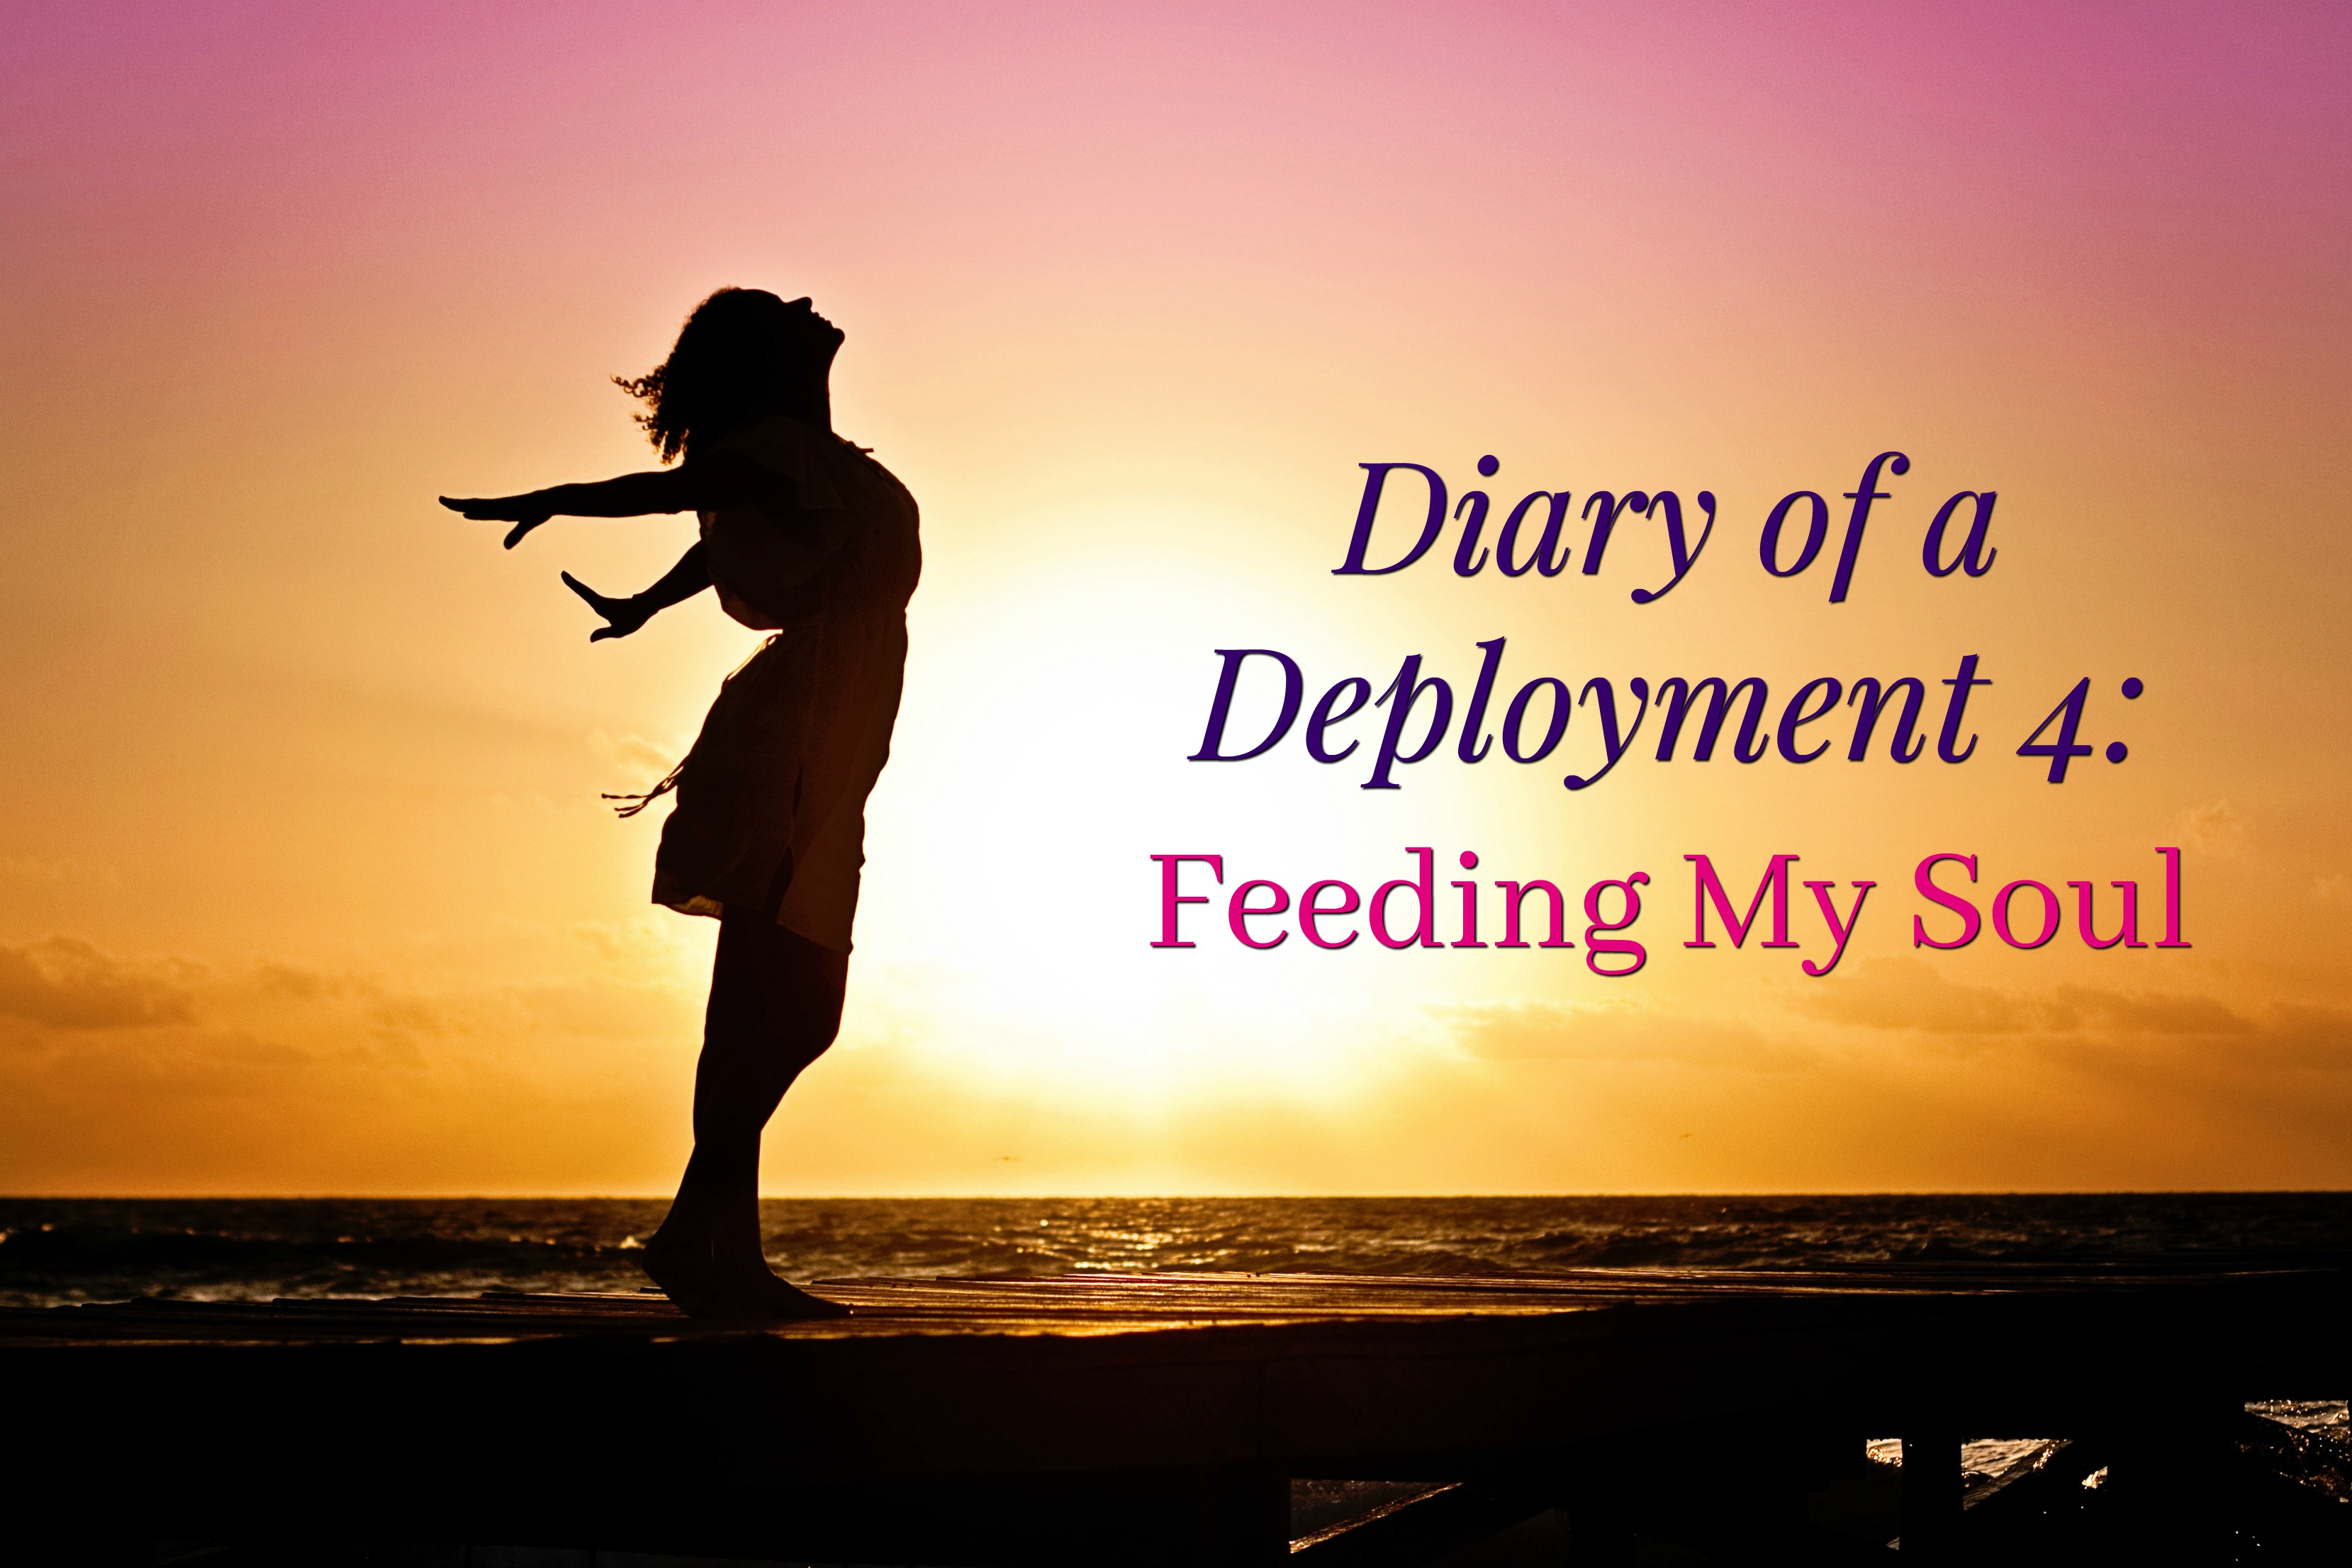 Diary of a Deployment 4: Feeding My Soul